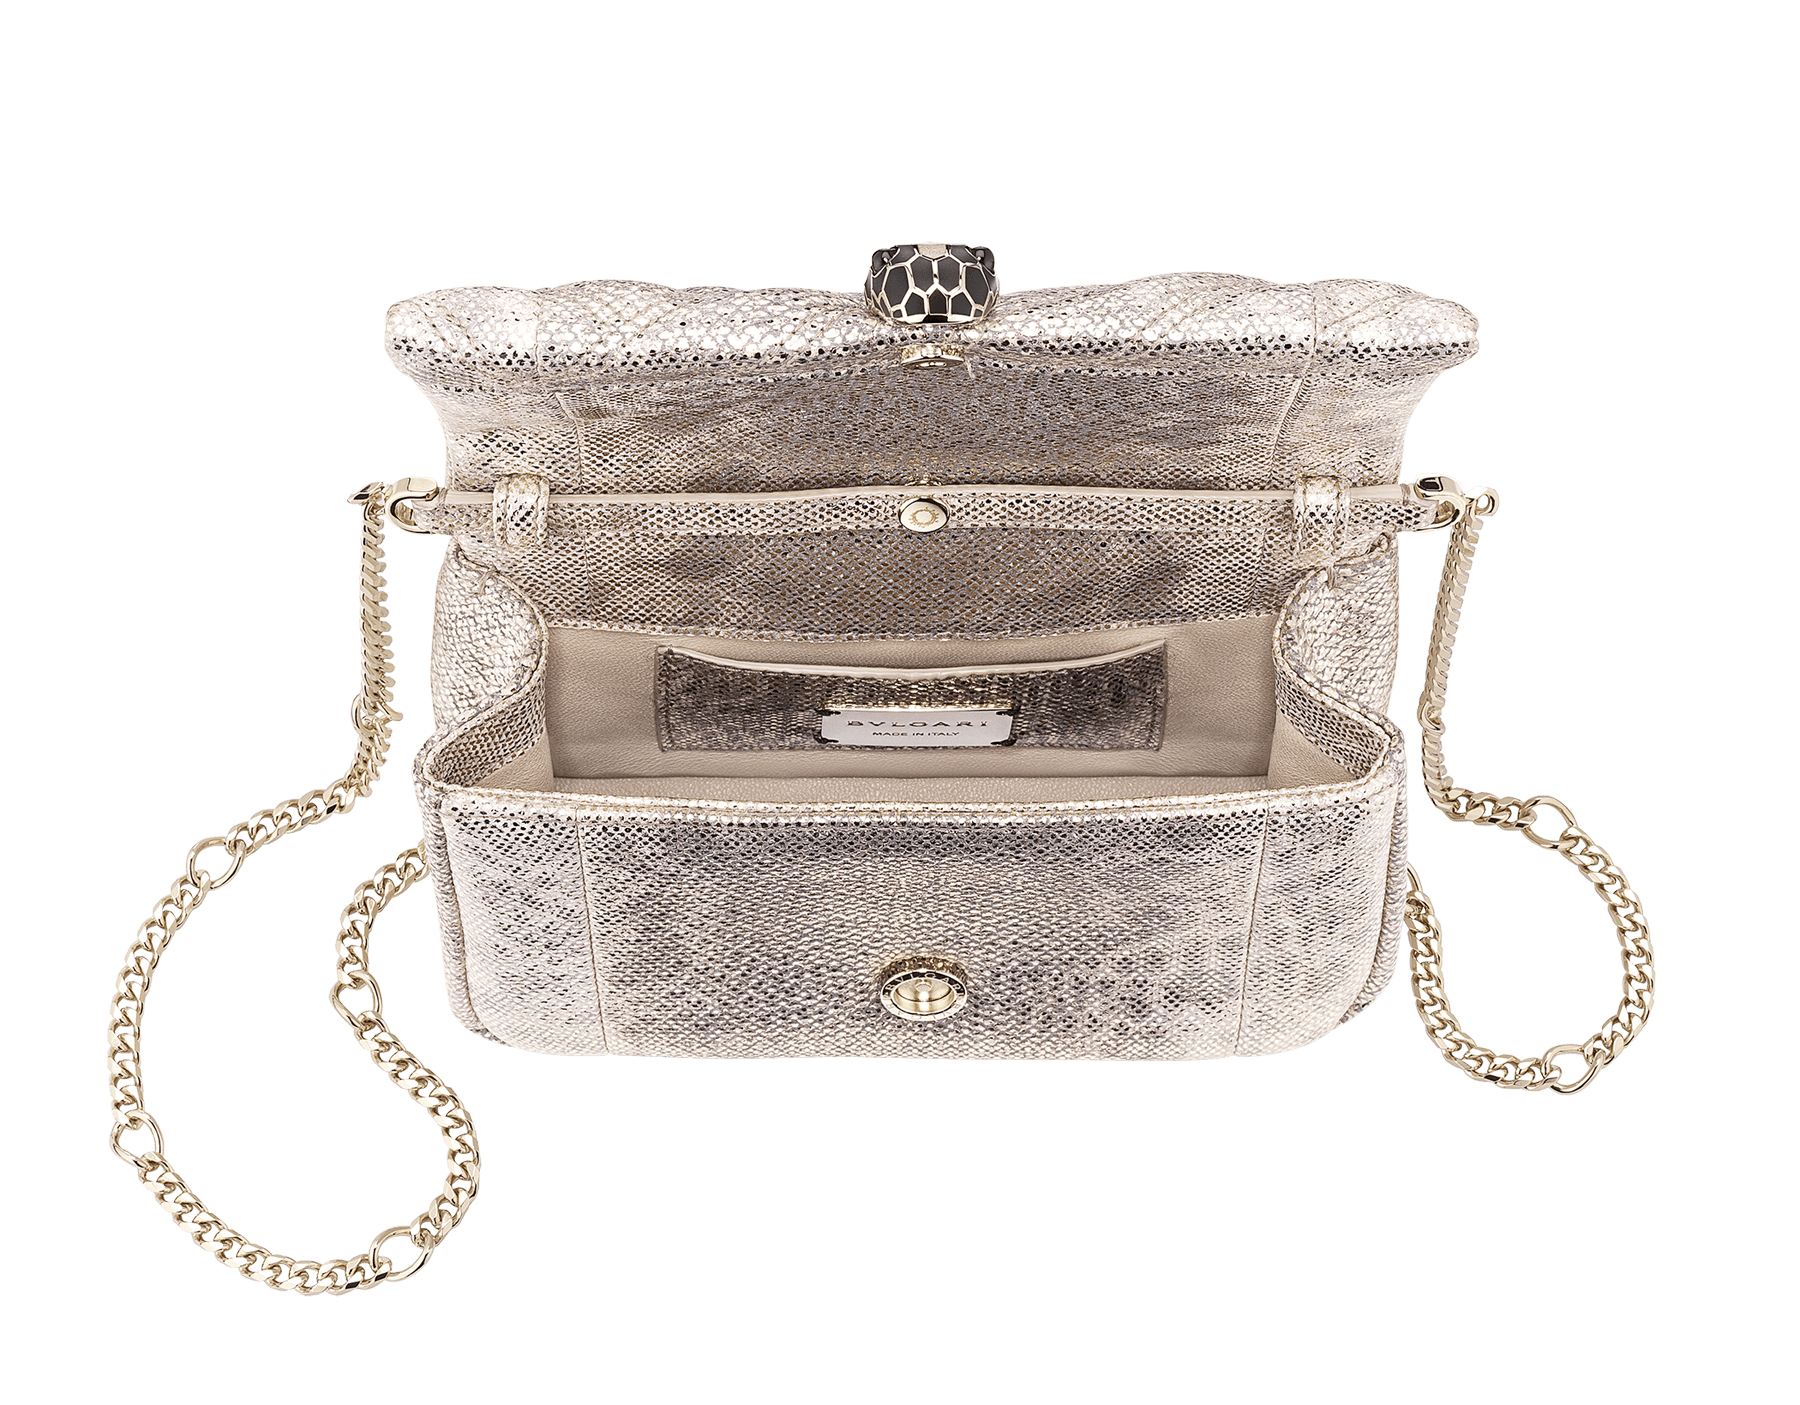 Serpenti Cabochon micro bag in soft matelassé milky opal metallic karung, with a graphic motif. Brass light gold plated tempting snake head closure in black and glitter milky opal enamel and black onyx eyes. 288807 image 4